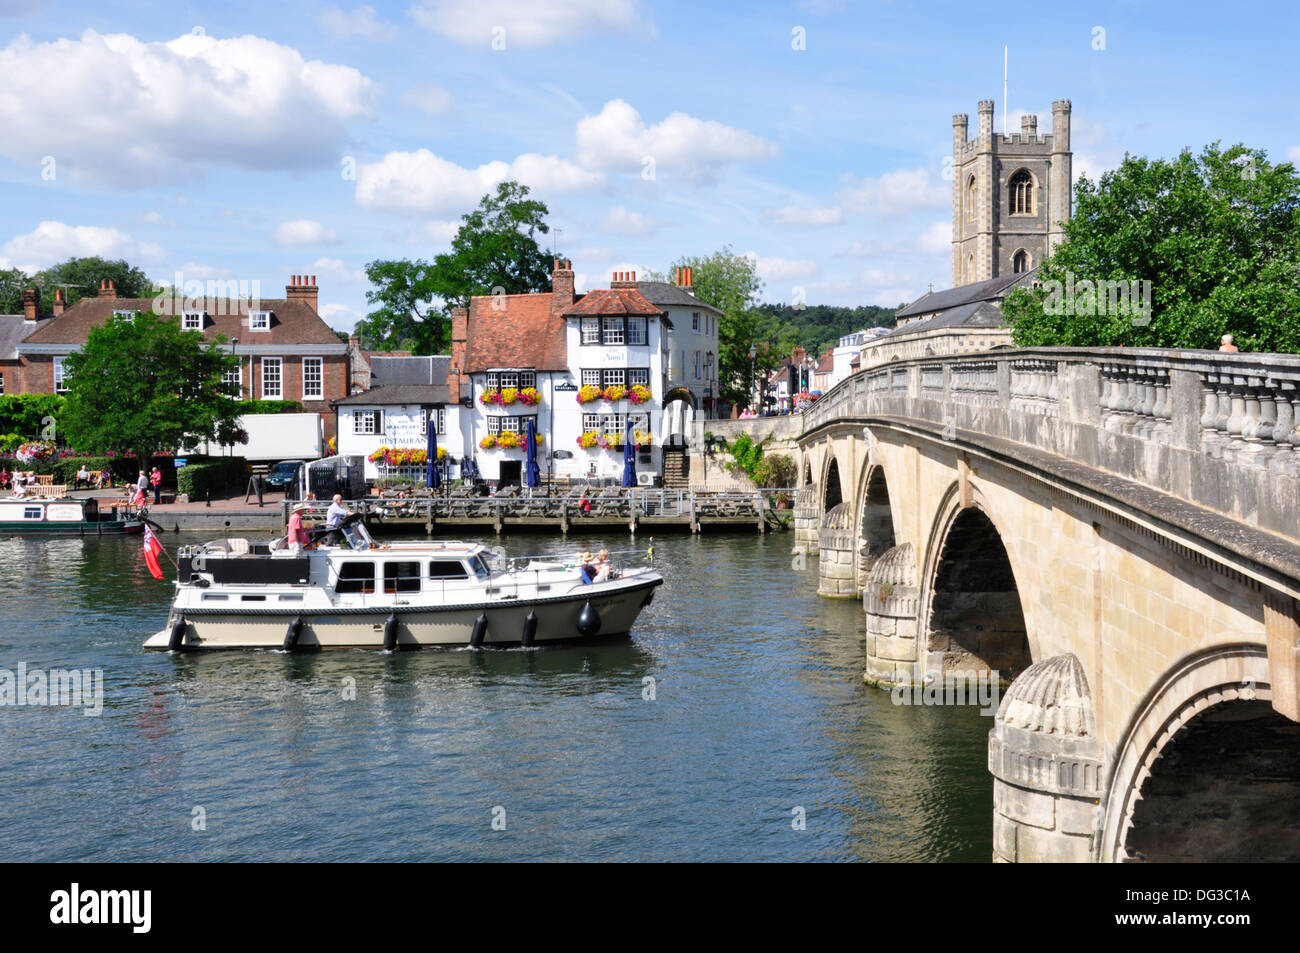 Oxon - Henley on Thames - view the town bridge - Angel inn - boat approaching the bridge - summer sunlight - blue - Stock Image